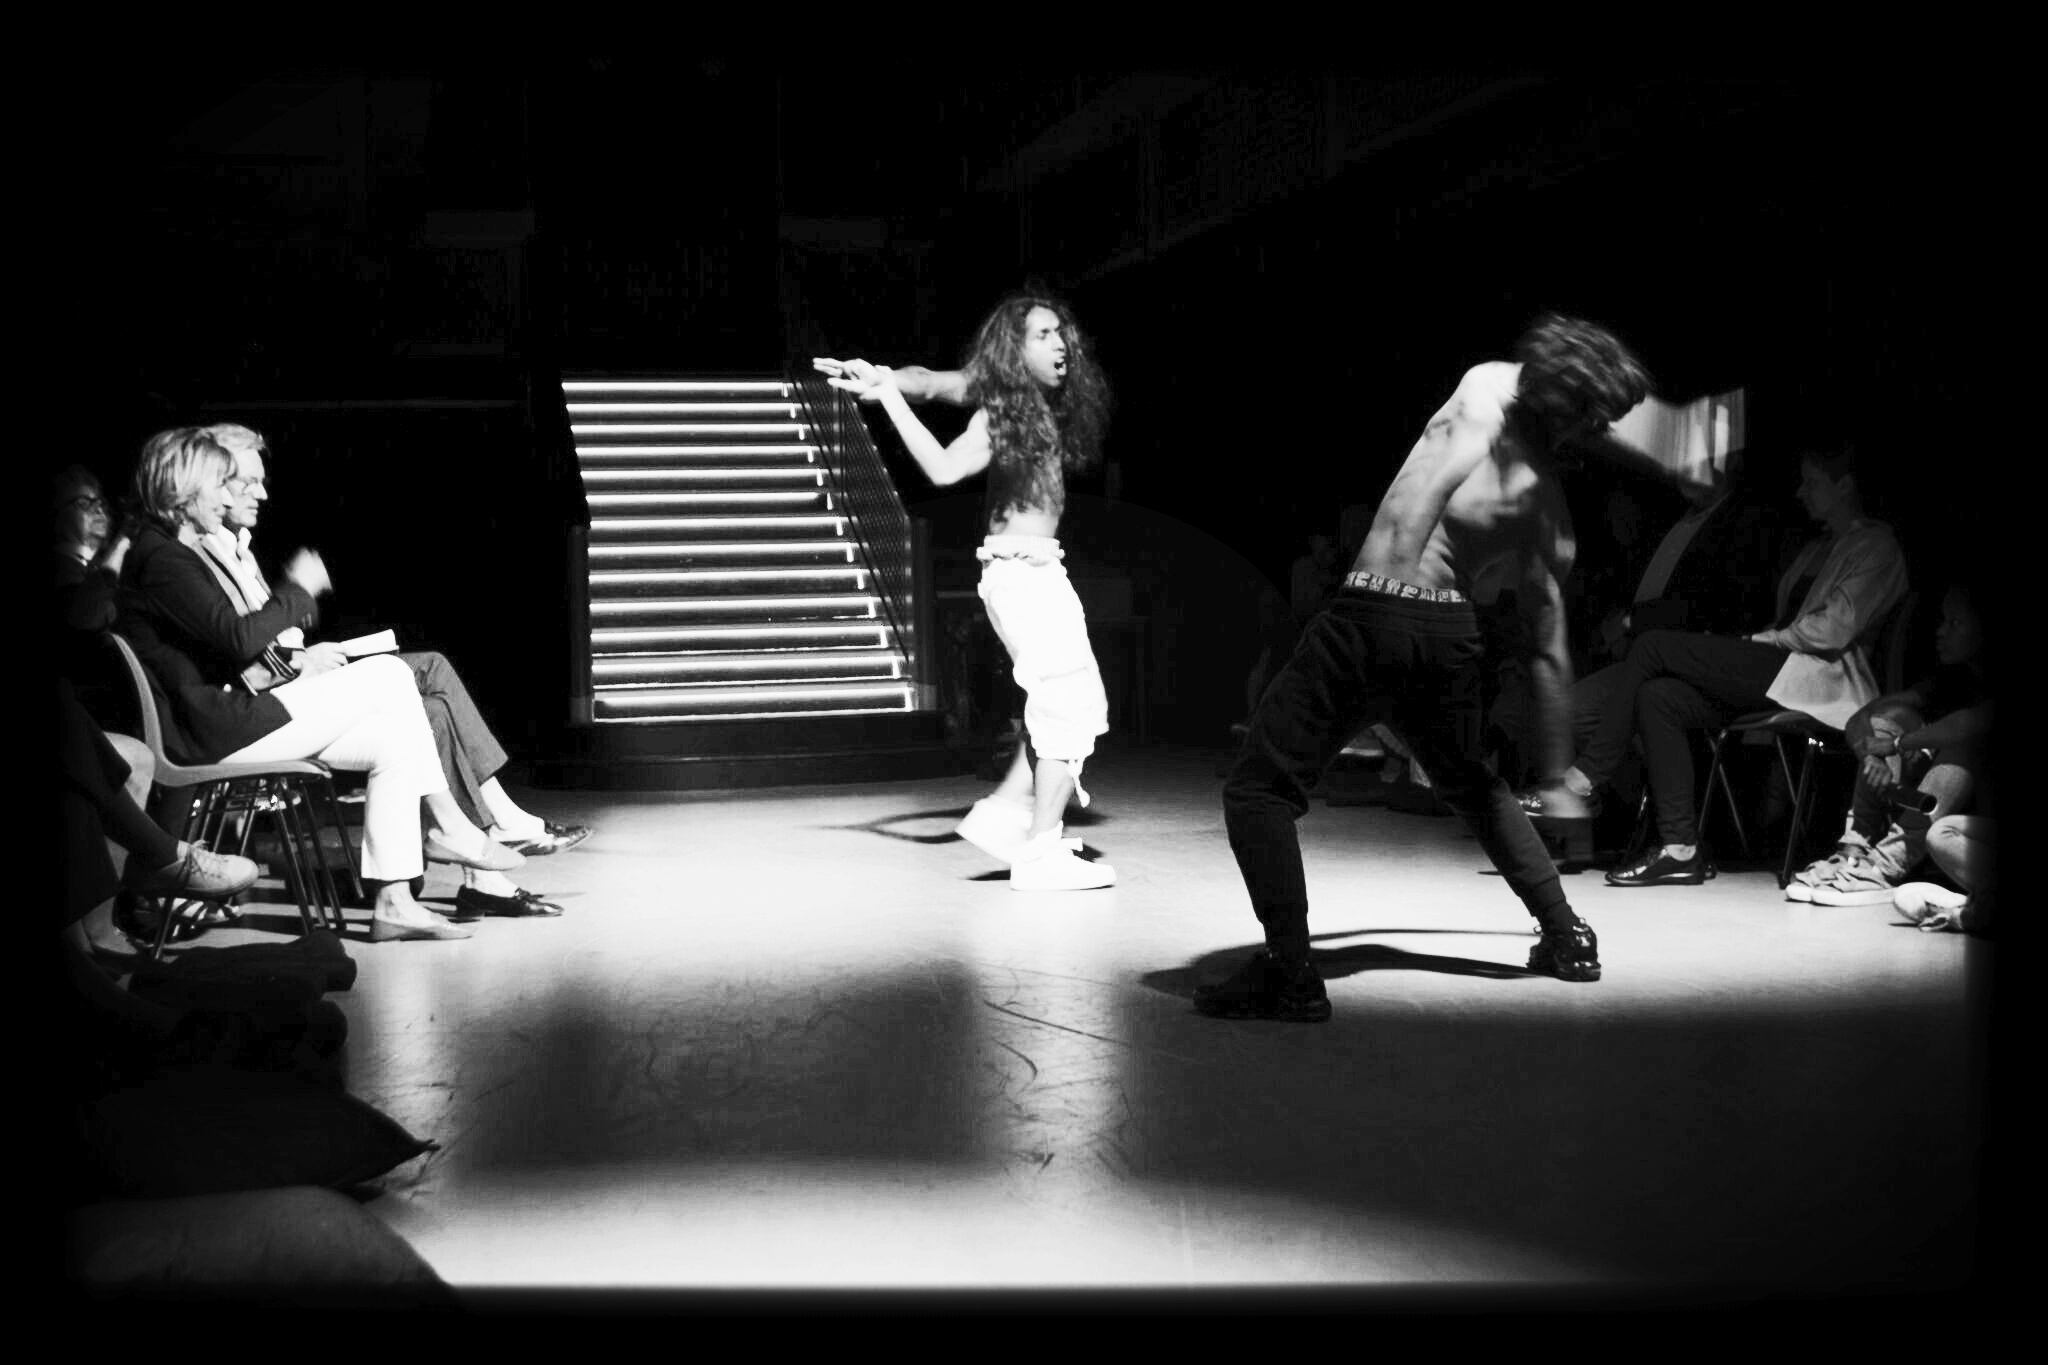 Flex to World - (Theatre Company) Dance-stage-production:Our Teaching Artists perform as company - showcasing thier talents in staged and unscripted performances. In 2016 Artists performed at Kunble Theater BK, 2017 Artists performed FLEX-Hyperborealis at Sentralen (The Vault) in Oslo, and 2019 at BRIC BK. The production chronicles Apollo's mythical journey to Hyperborea, The Land Beyond the North Wind.